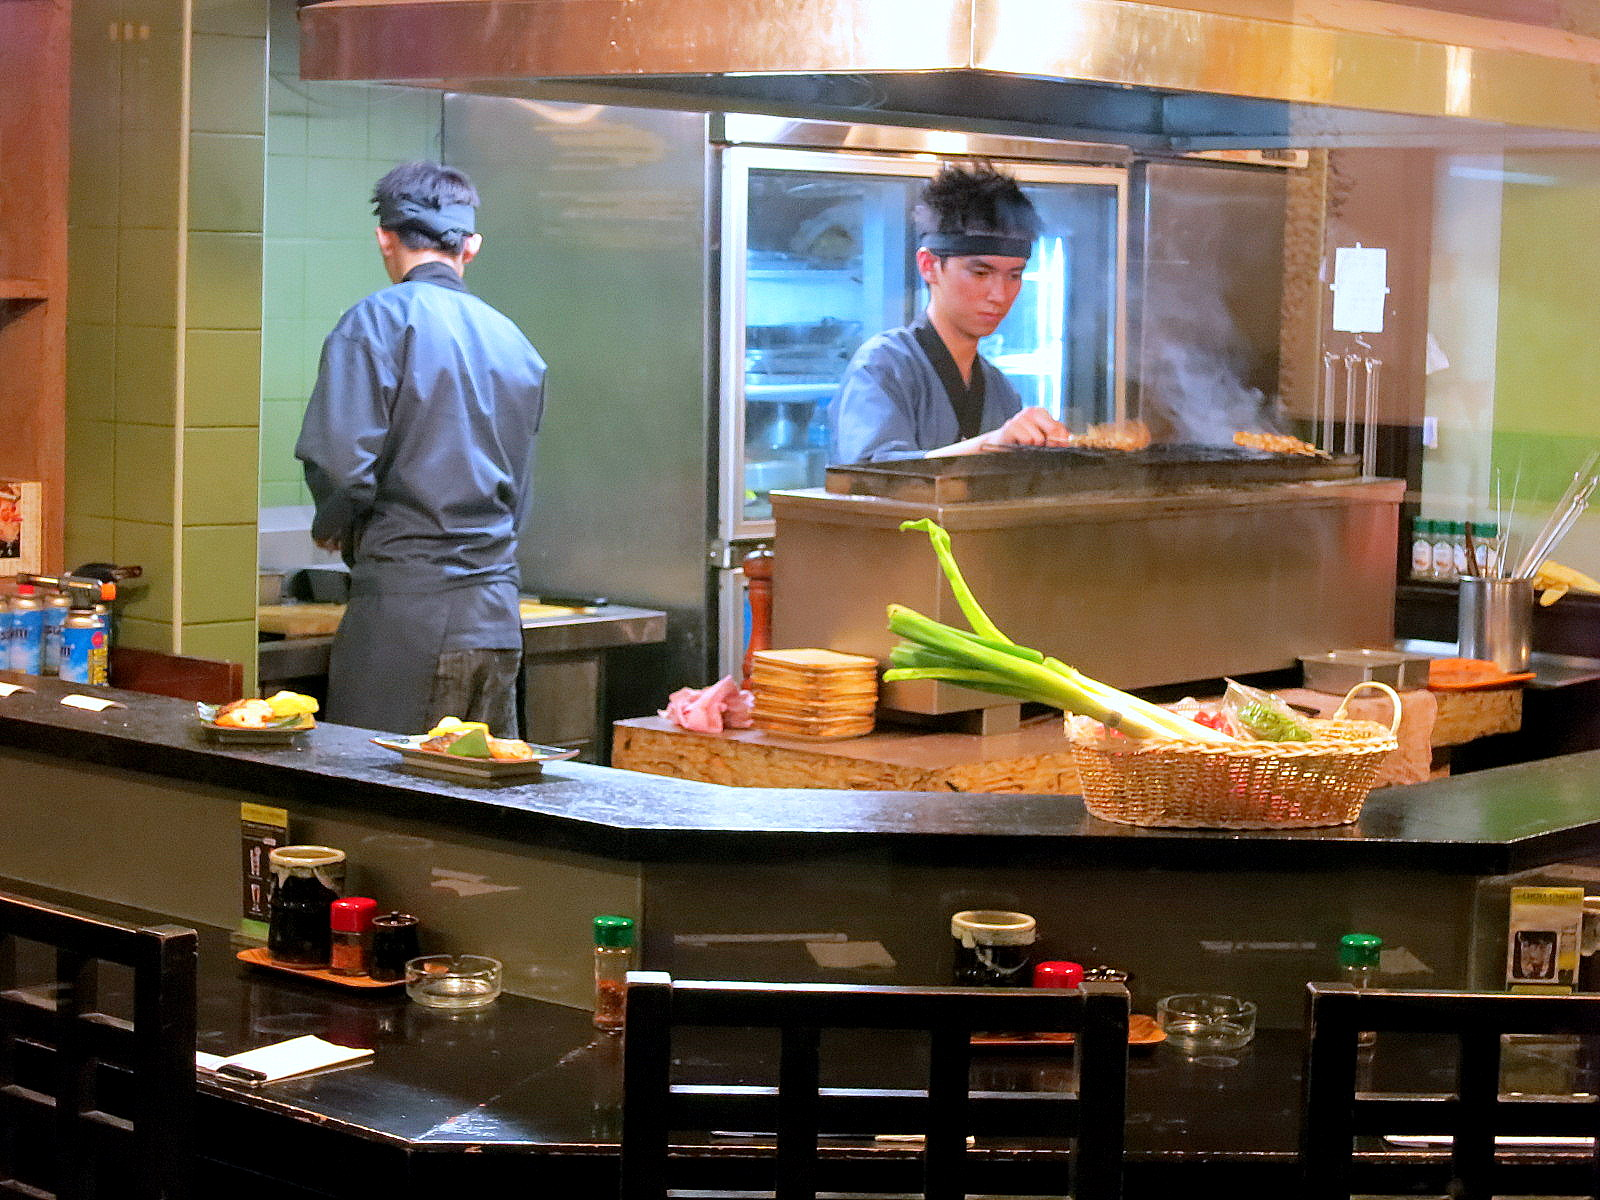 Sango At Pj S Crystal Crown Hotel Offers An A La Carte Buffet For Dinner Rm68 But Having Food Cooked To Order Can Sometimes Fuel Frustration